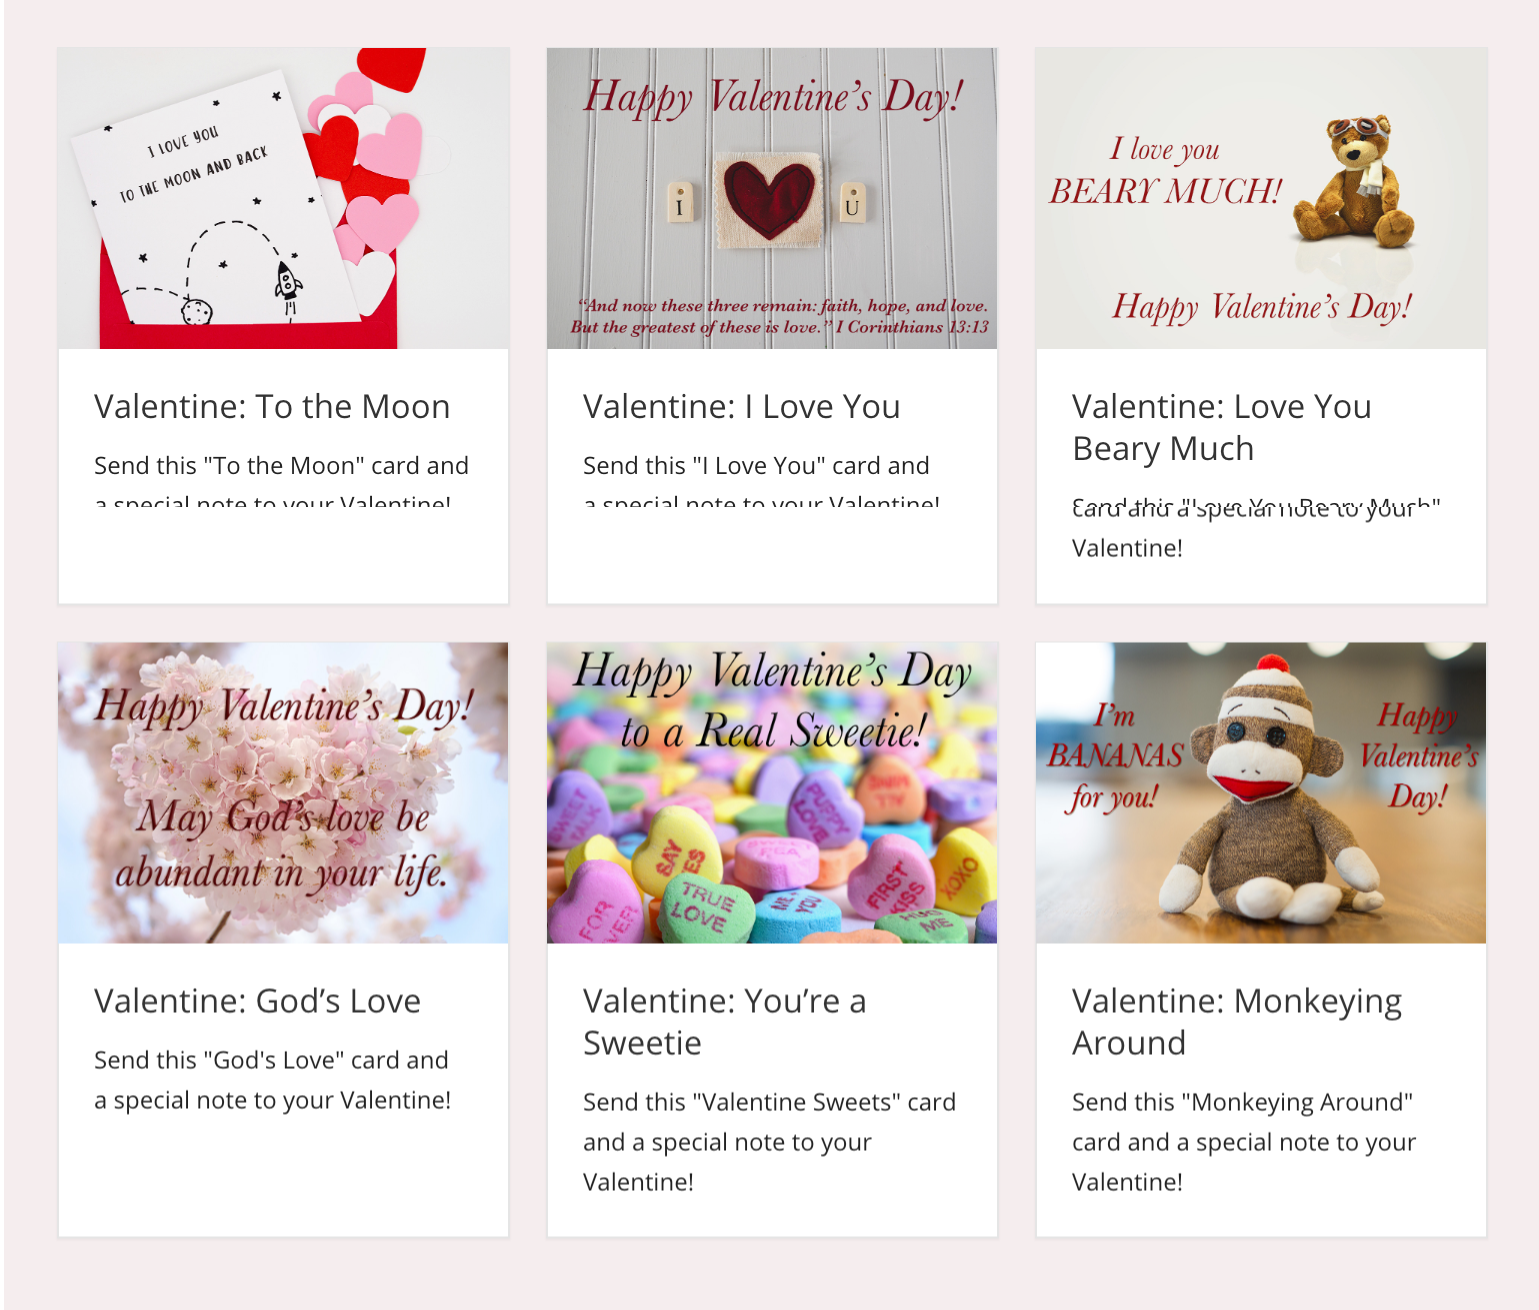 This Valentine's Day eCard grid example contains 6 Valentine's Day Cards with different greetings. Each image is different with a related caption.